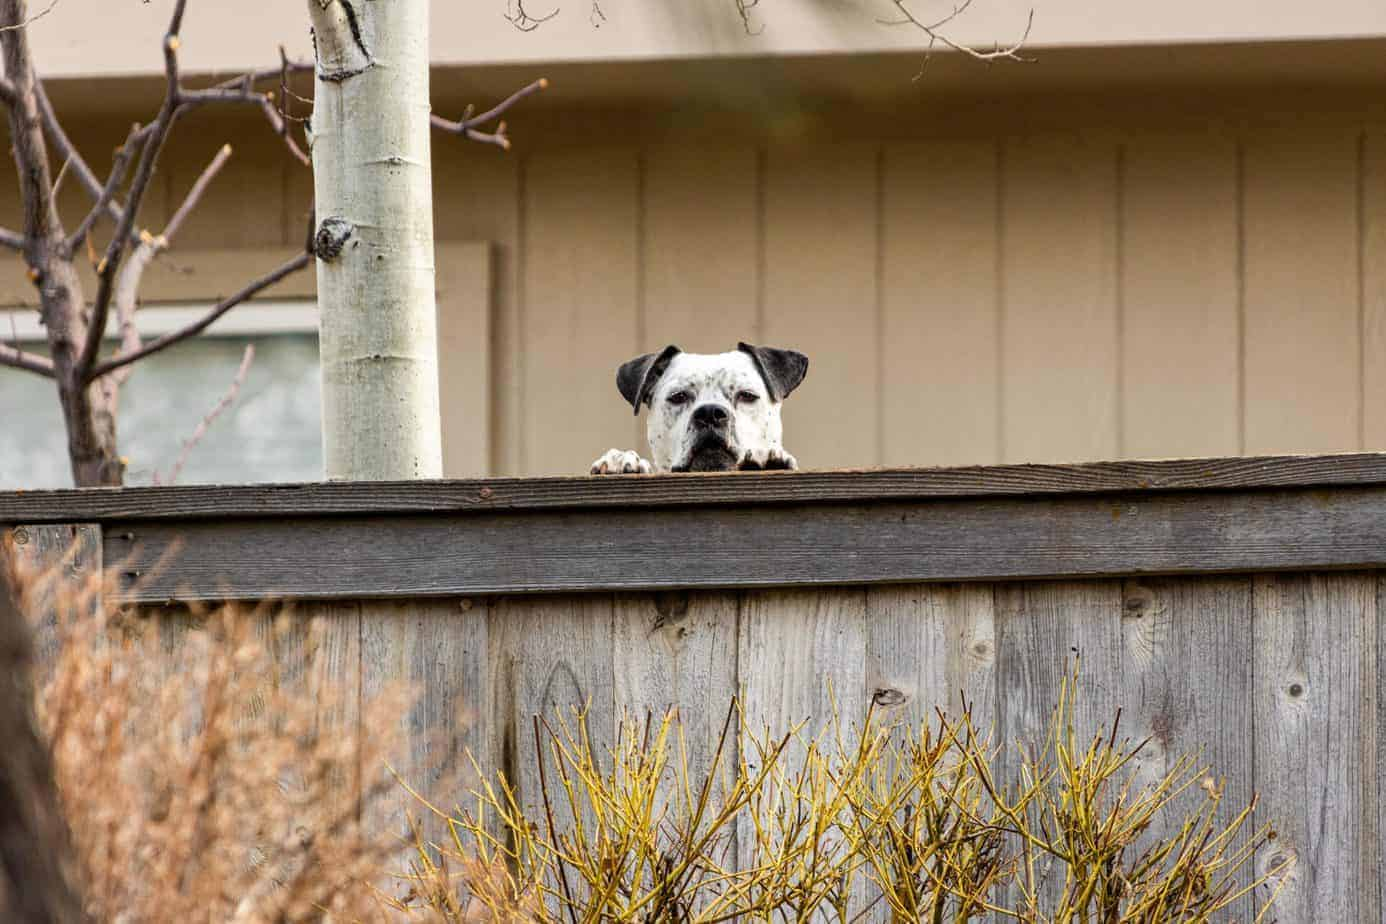 Bulldog peeks over fence. Make your dog neighbor-friendly. Listen to their concerns, especially if your dog barks at them nonstop, dig holes, or escapes into their yard.